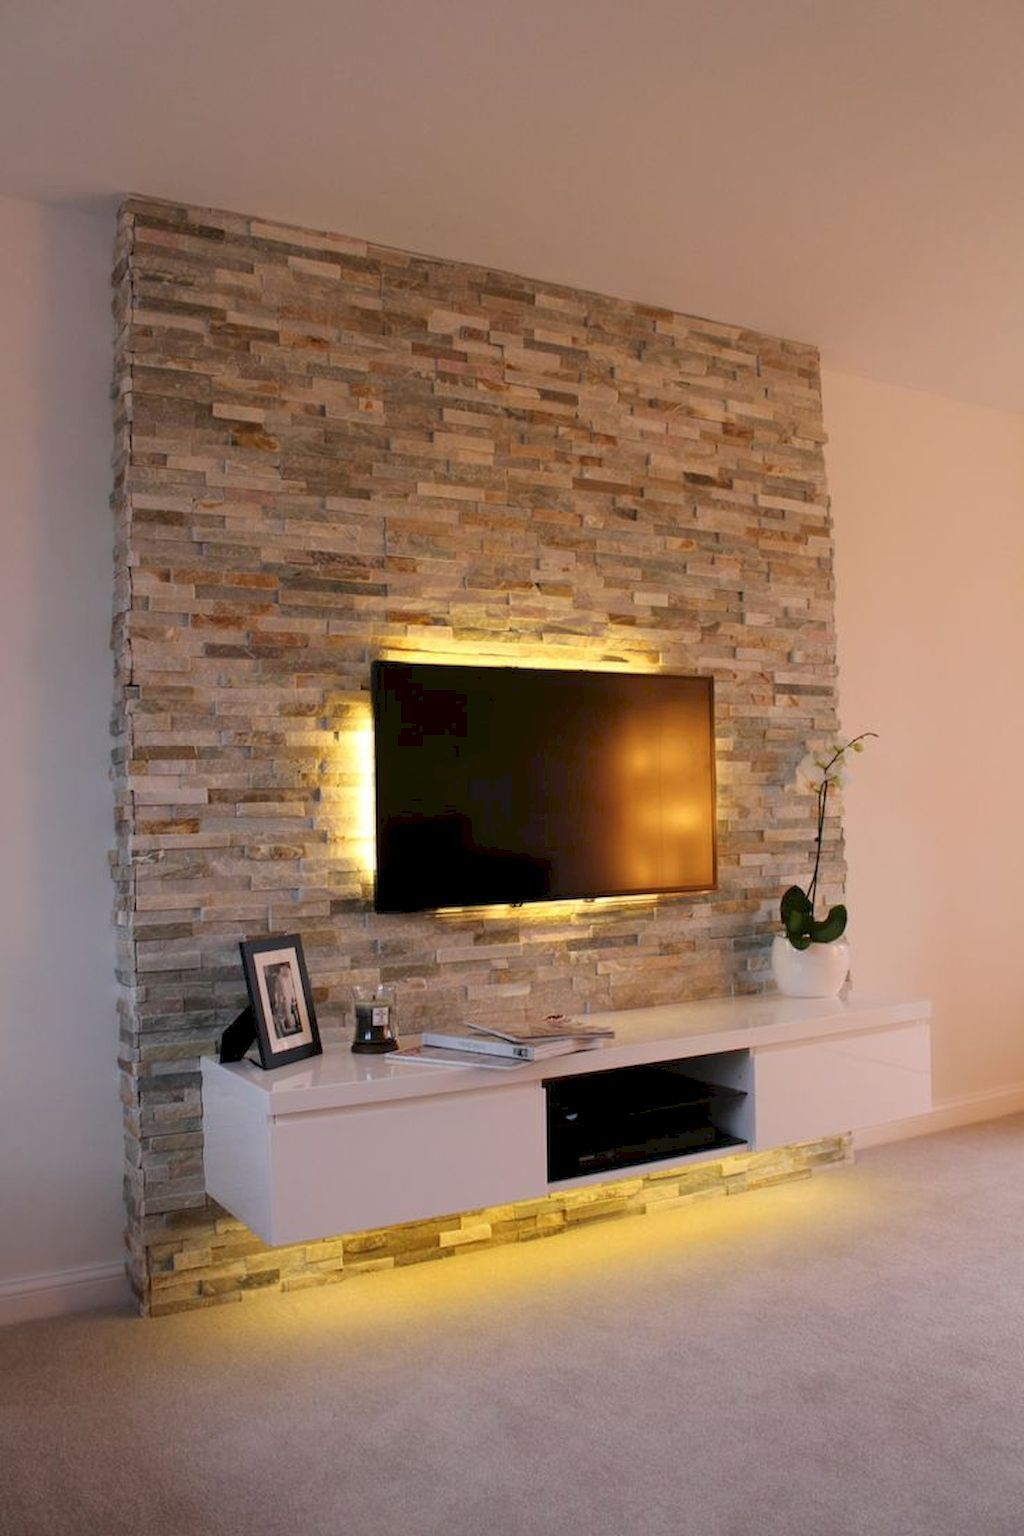 Cool 15 TV Wall Living Room Ideas Decor On A Budget https